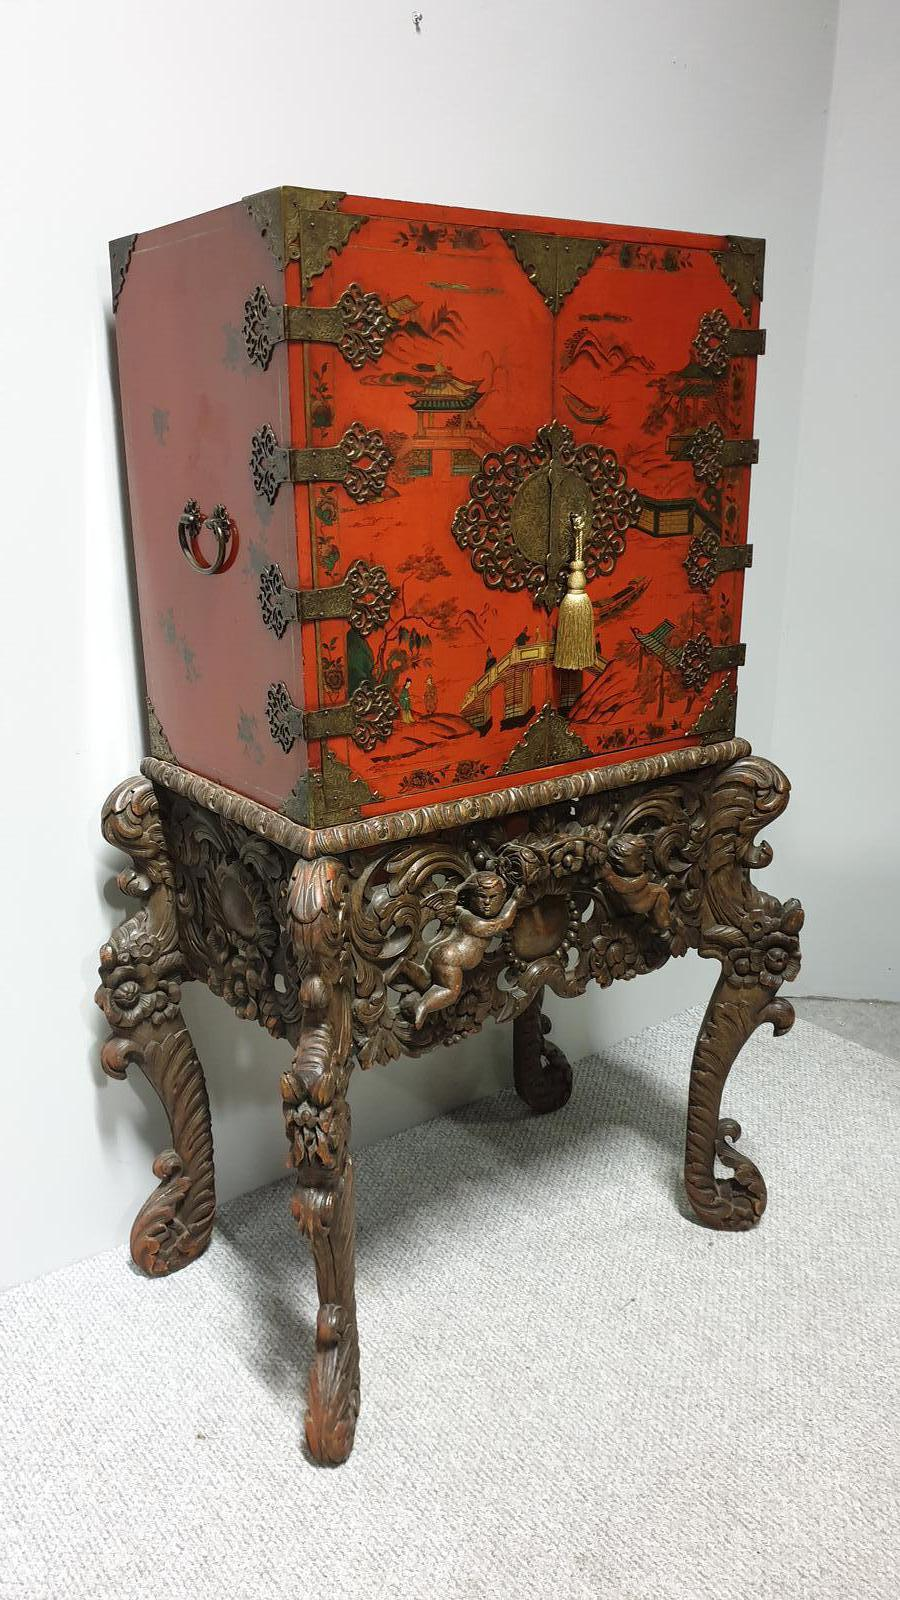 Antique Chinoiserie Red Lacquer Cabinet on  Stand Fitted Interior c.1900 (1 of 1)